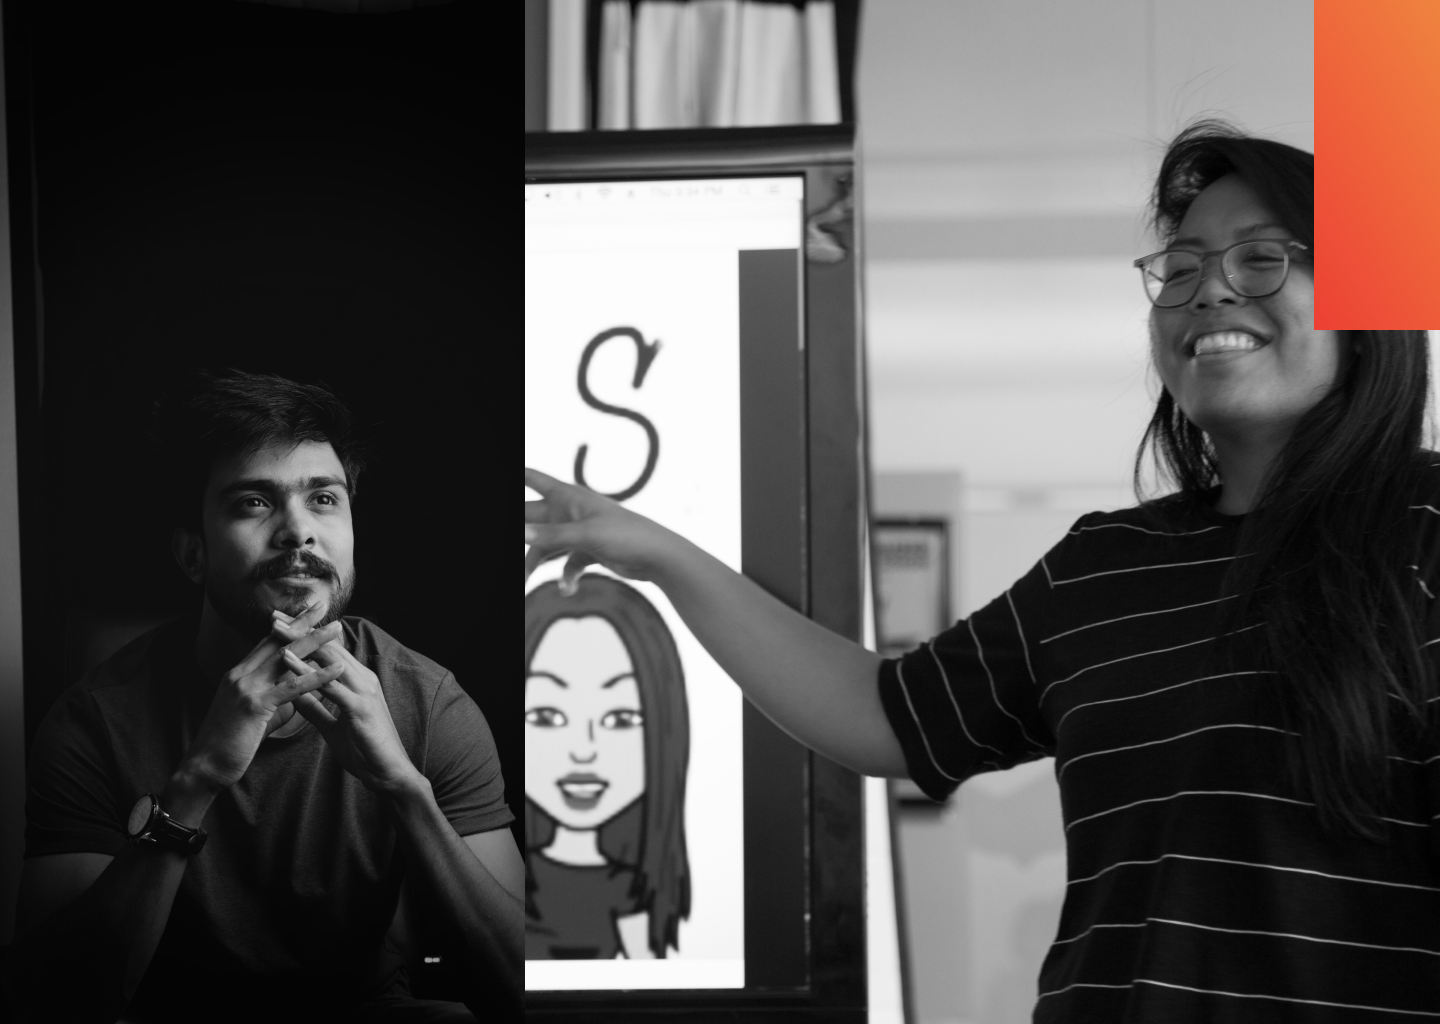 A man attentively listens in one image while a woman teaches from a whiteboard in the next image.